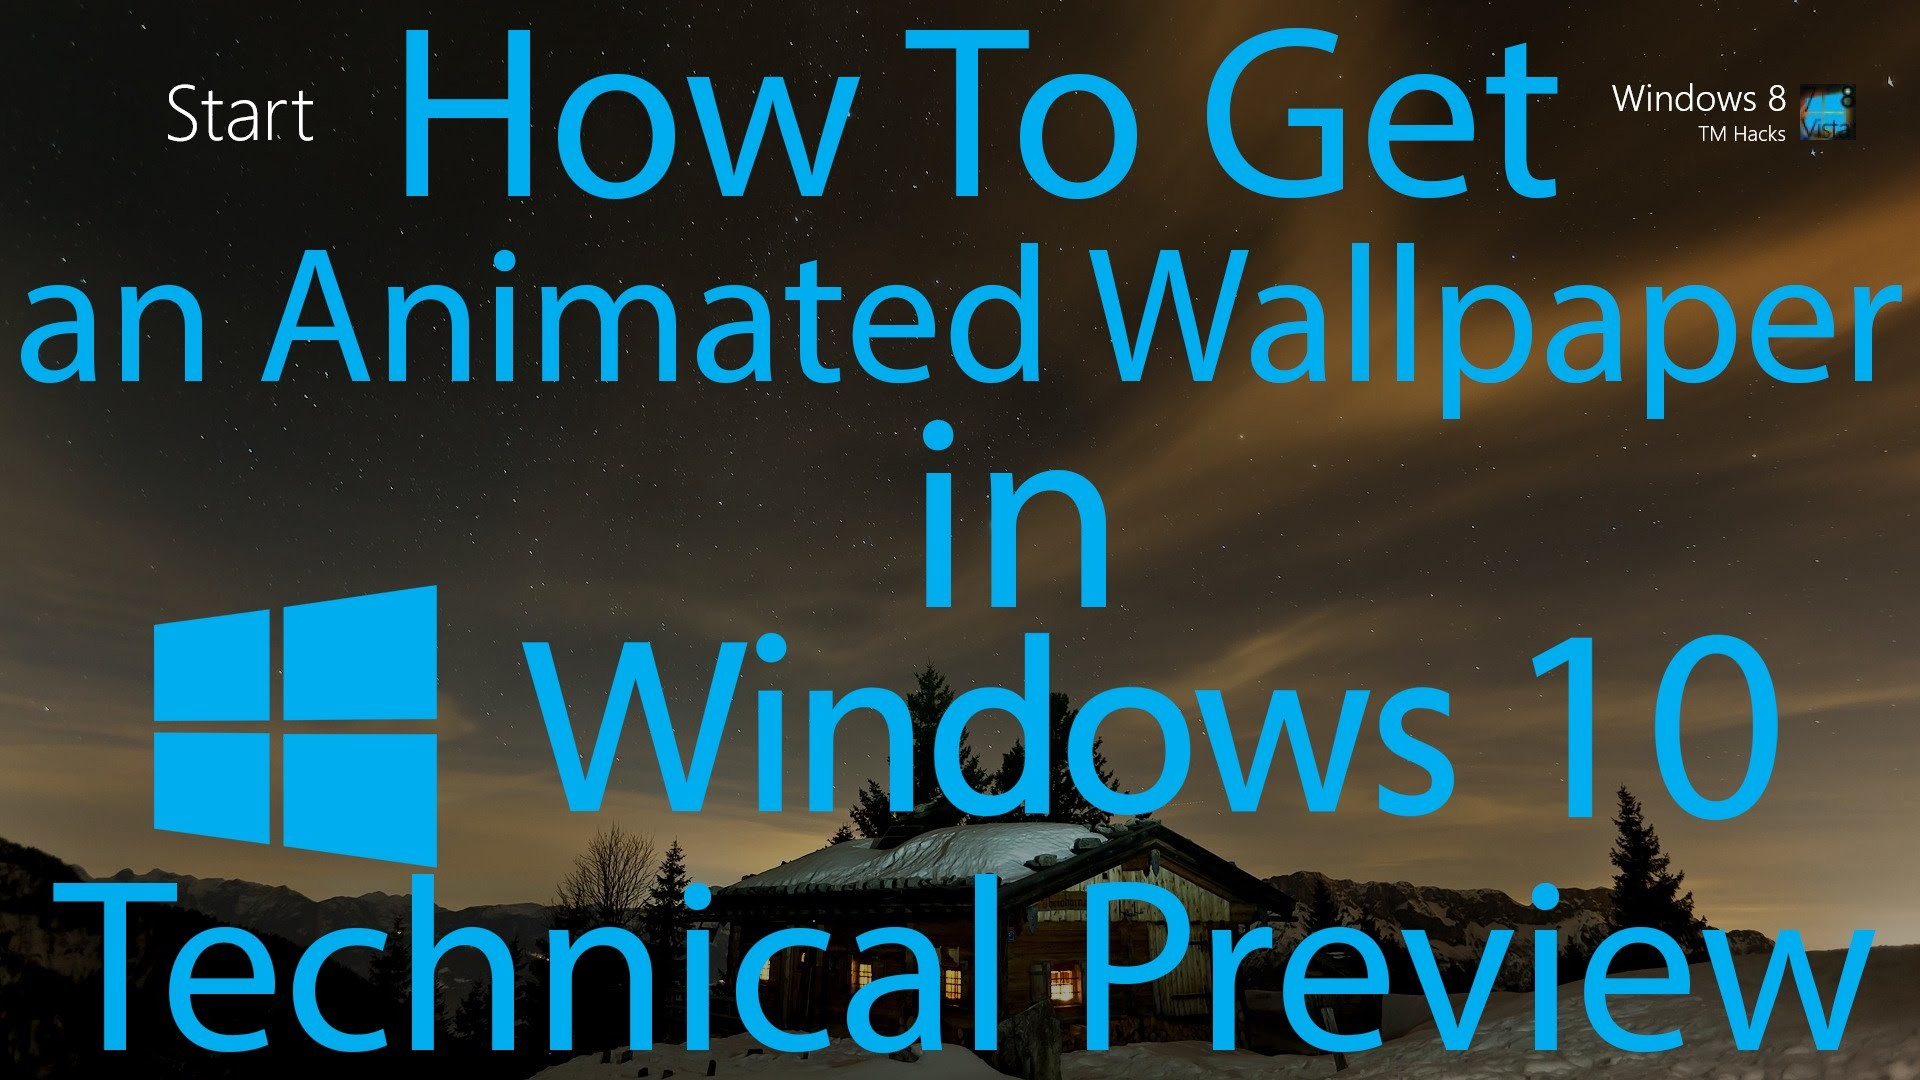 How To Have An Animated Wallpaper In Windows 10 Technical Moving Wallpapers For Desktop For Windows 10 1920x1080 Wallpaper Teahub Io